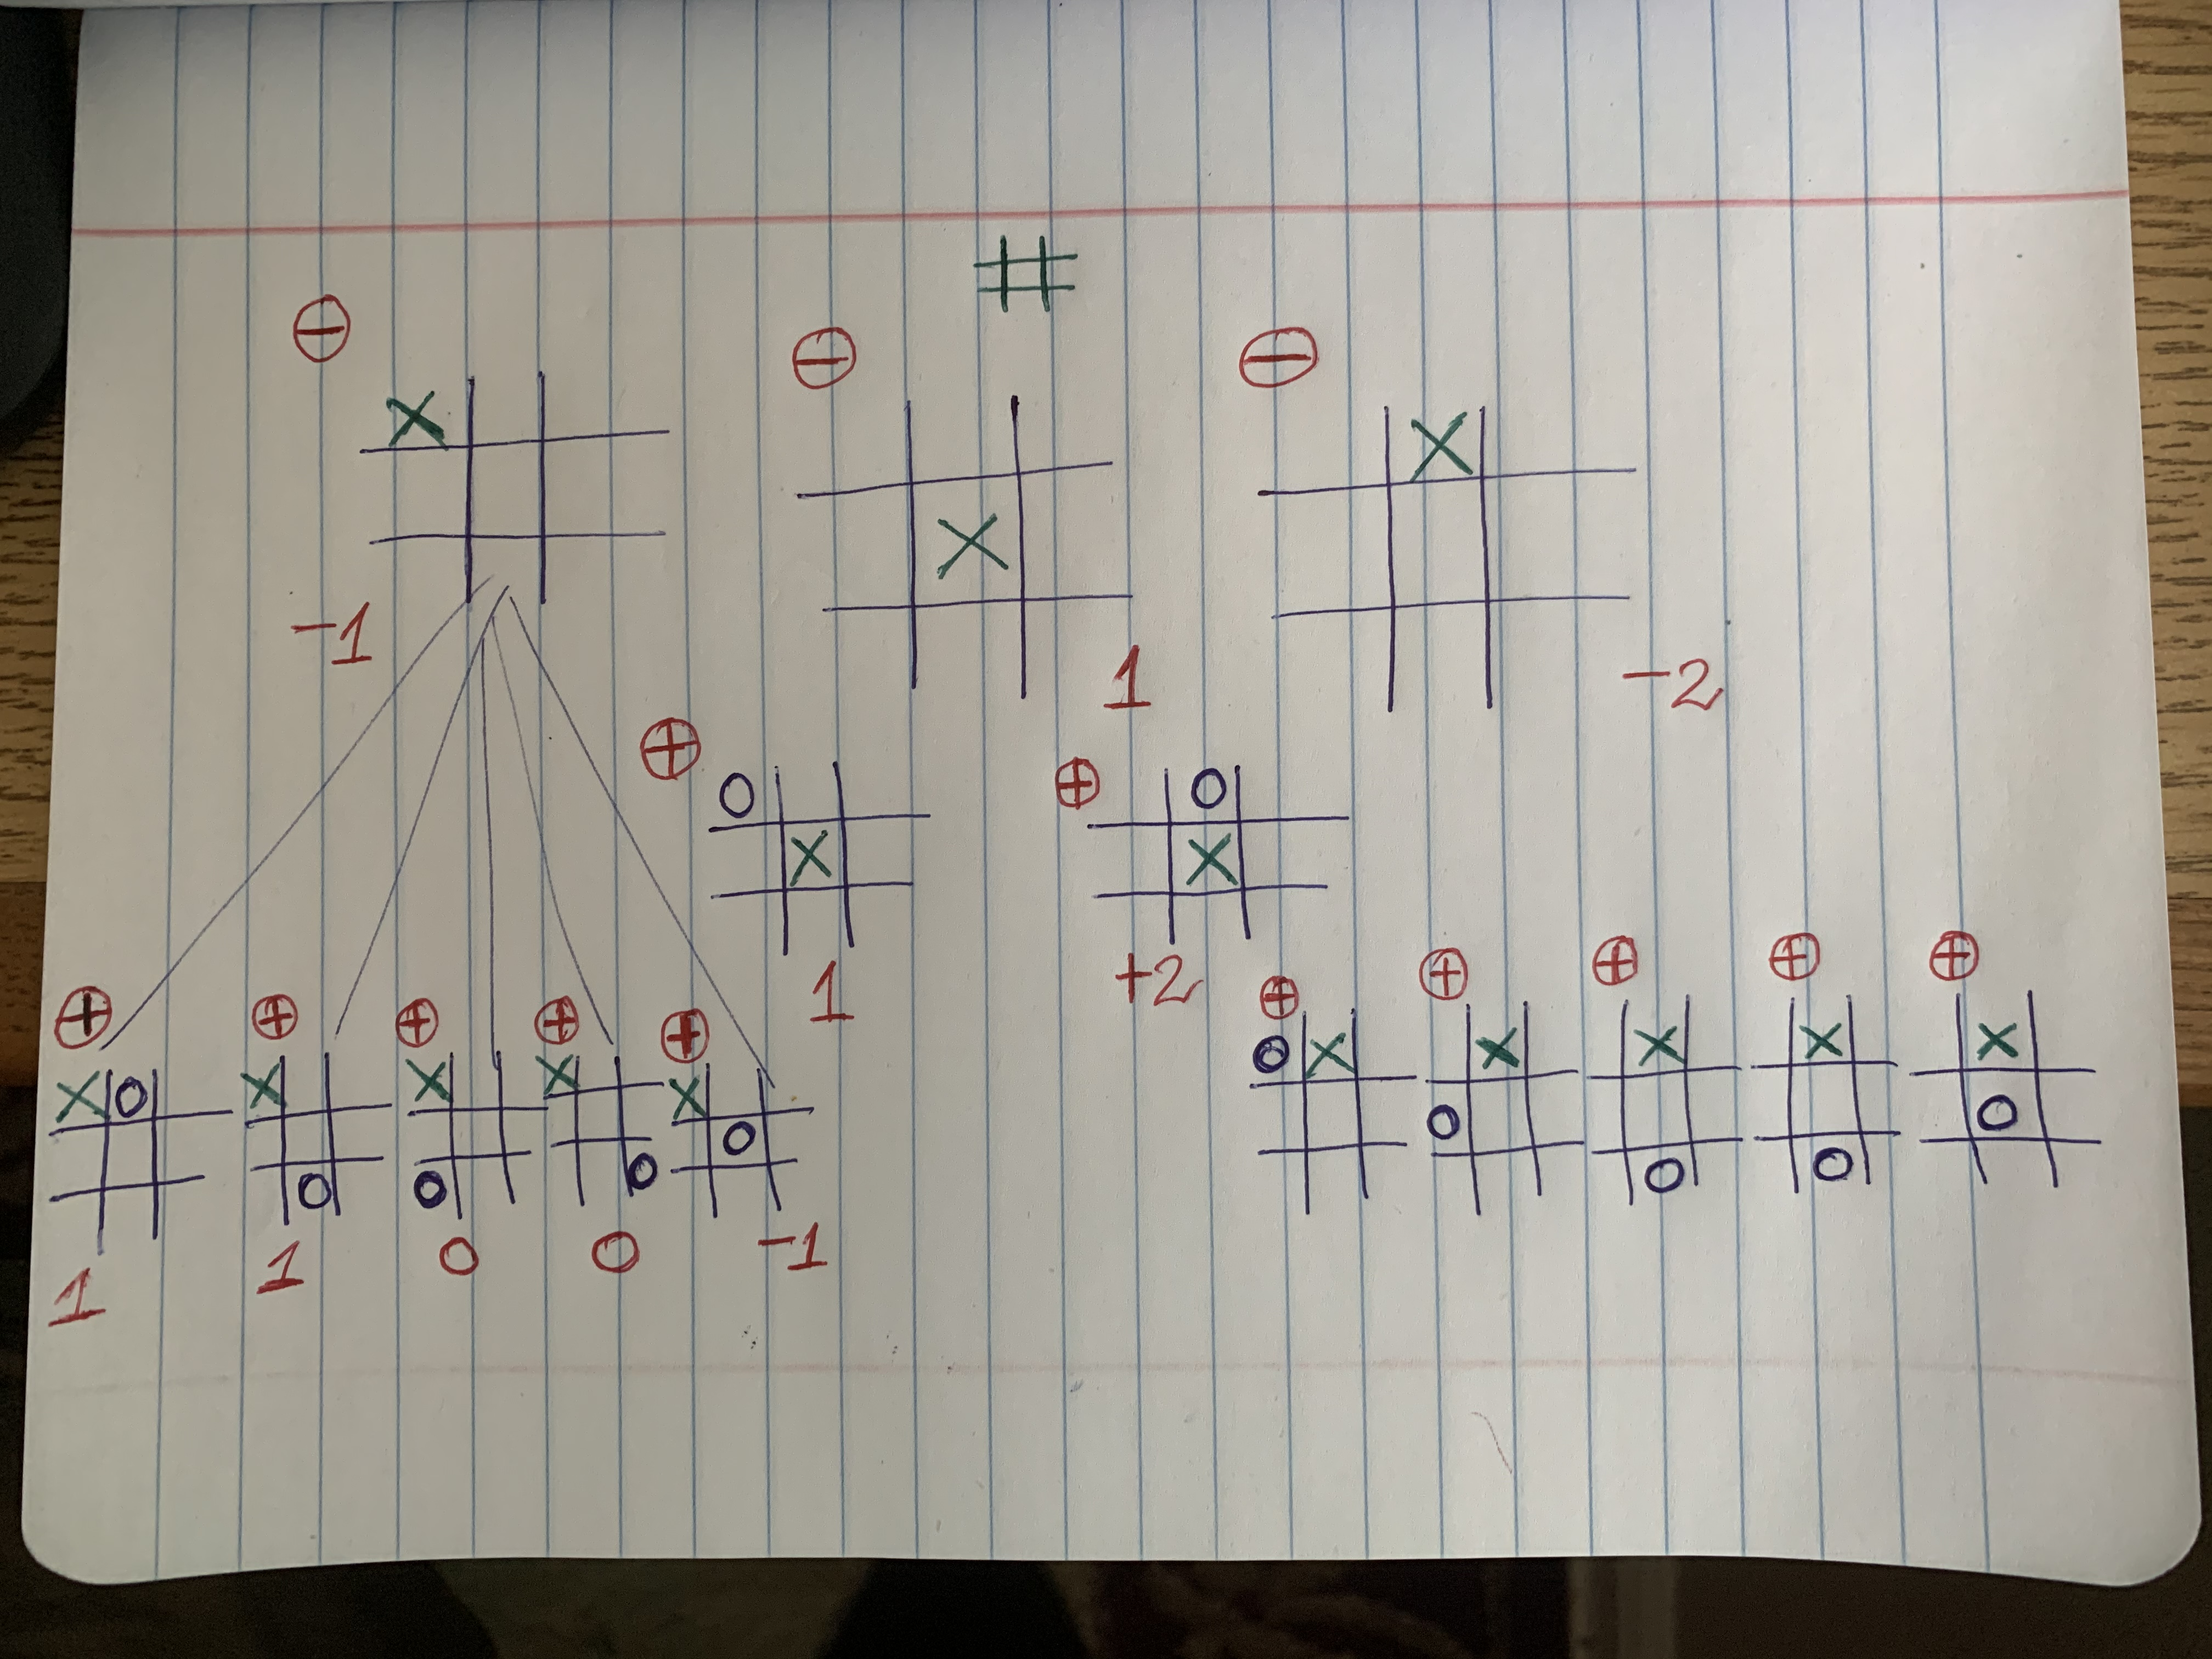 Game Tree For Tic-Tac-Toe Game